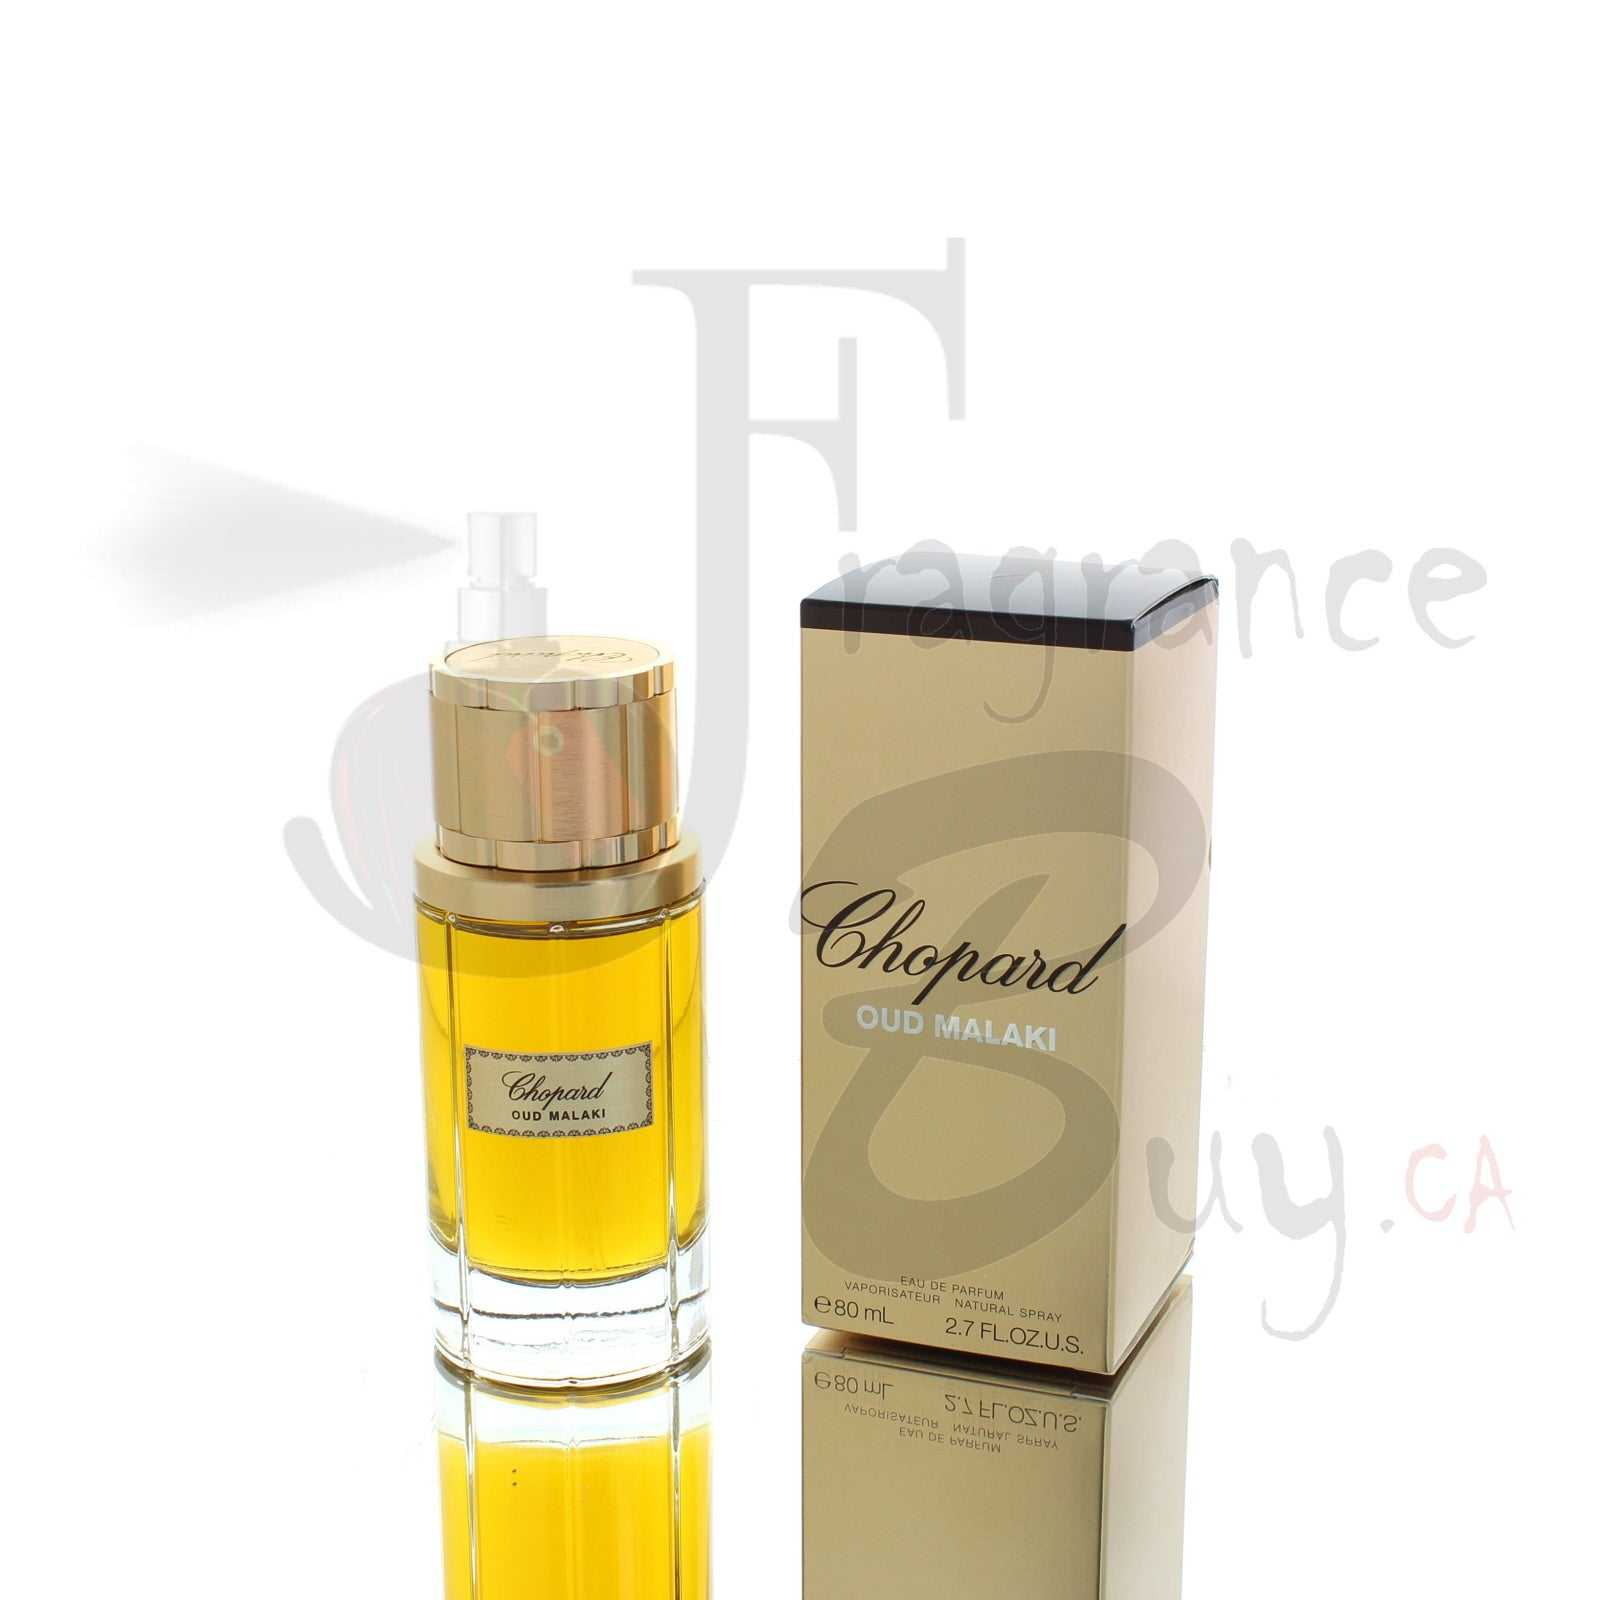 Chopard Oud Malaki For Man/Woman